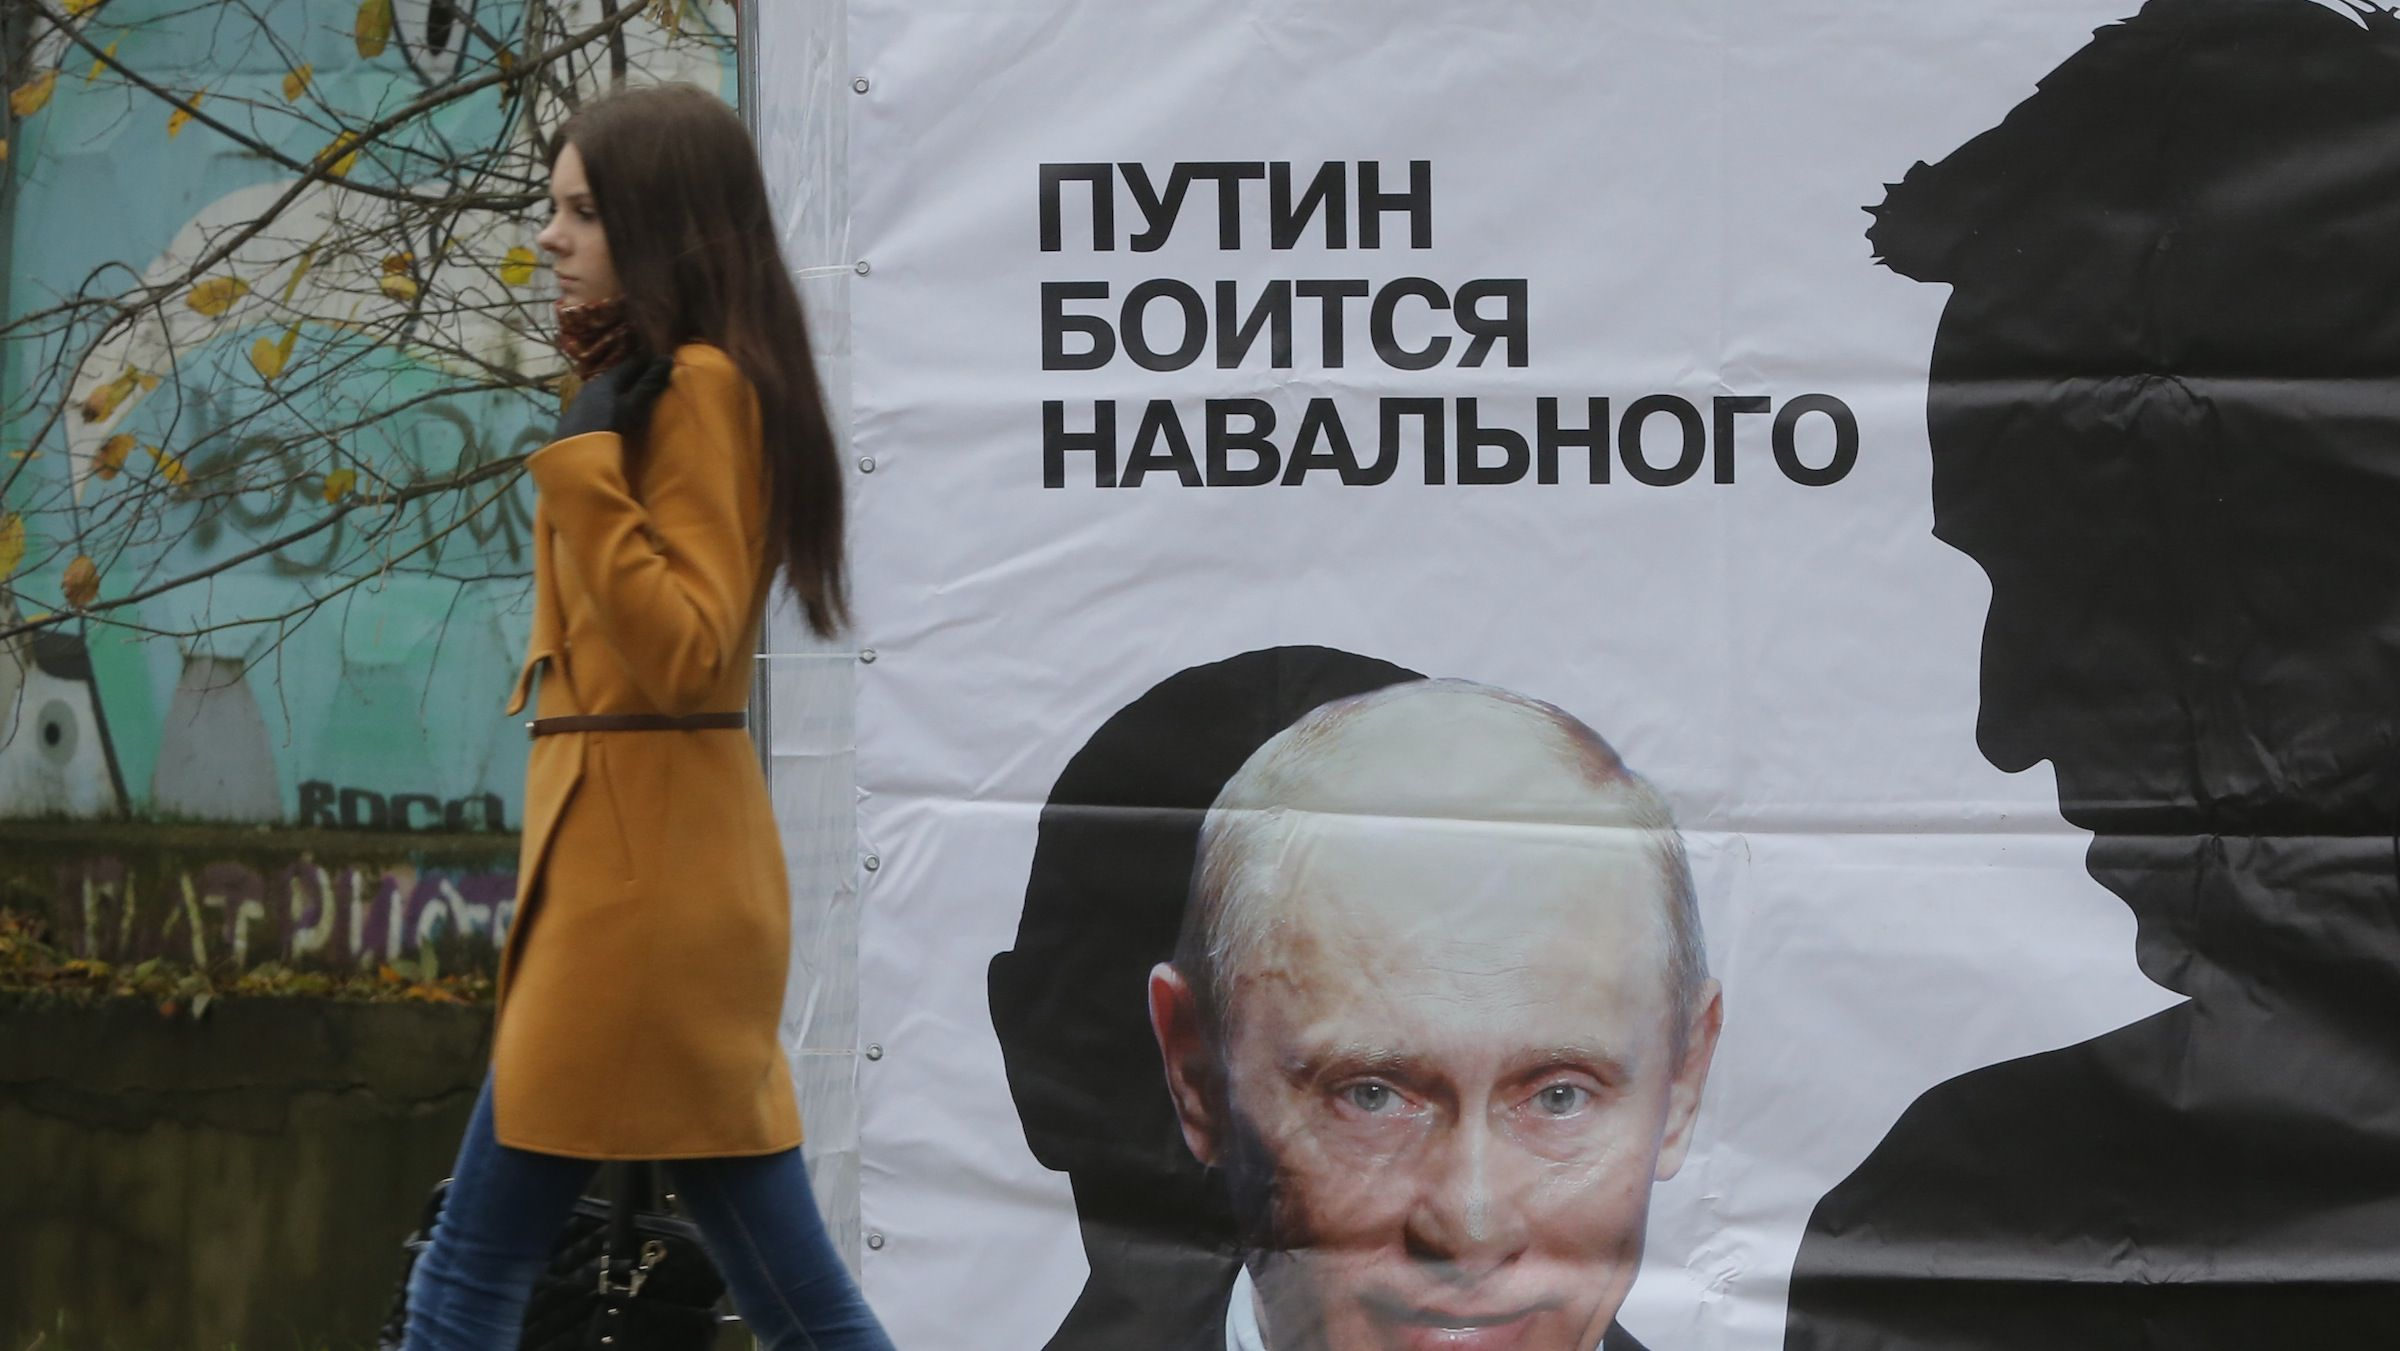 """A woman passes a poster reading """"Putin is afraid of Navalny"""" in a street in Kirov, Russia, Wednesday, Oct. 16, 2013. The judge of a Russian court has overturned a sentence for opposition leader and anti-corruption blogger Alexei Navalny, handing him a suspended sentence instead of five years in prison. (AP Photo/Dmitry Lovetsky)"""